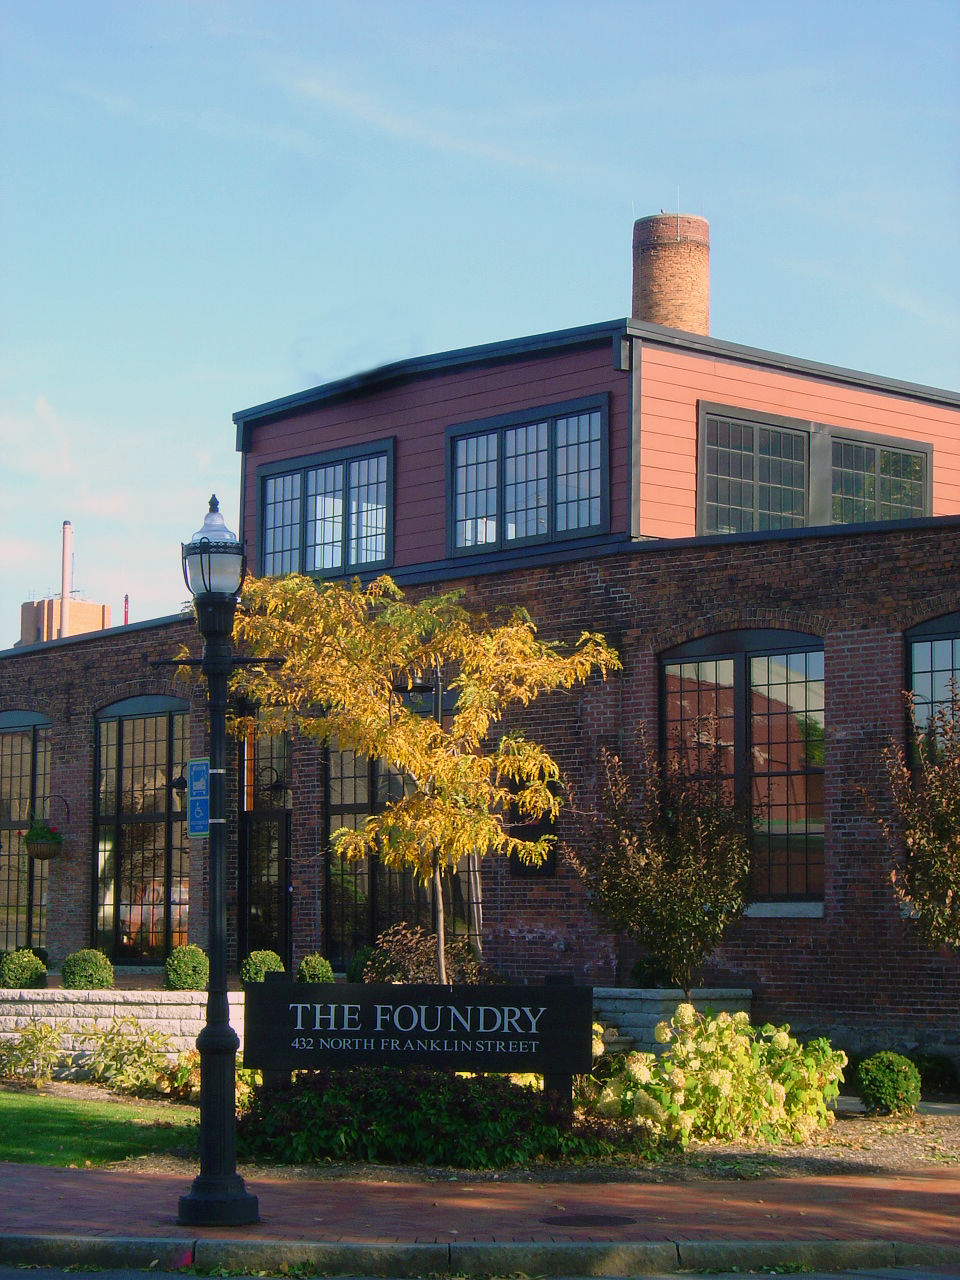 The Foundry front view close